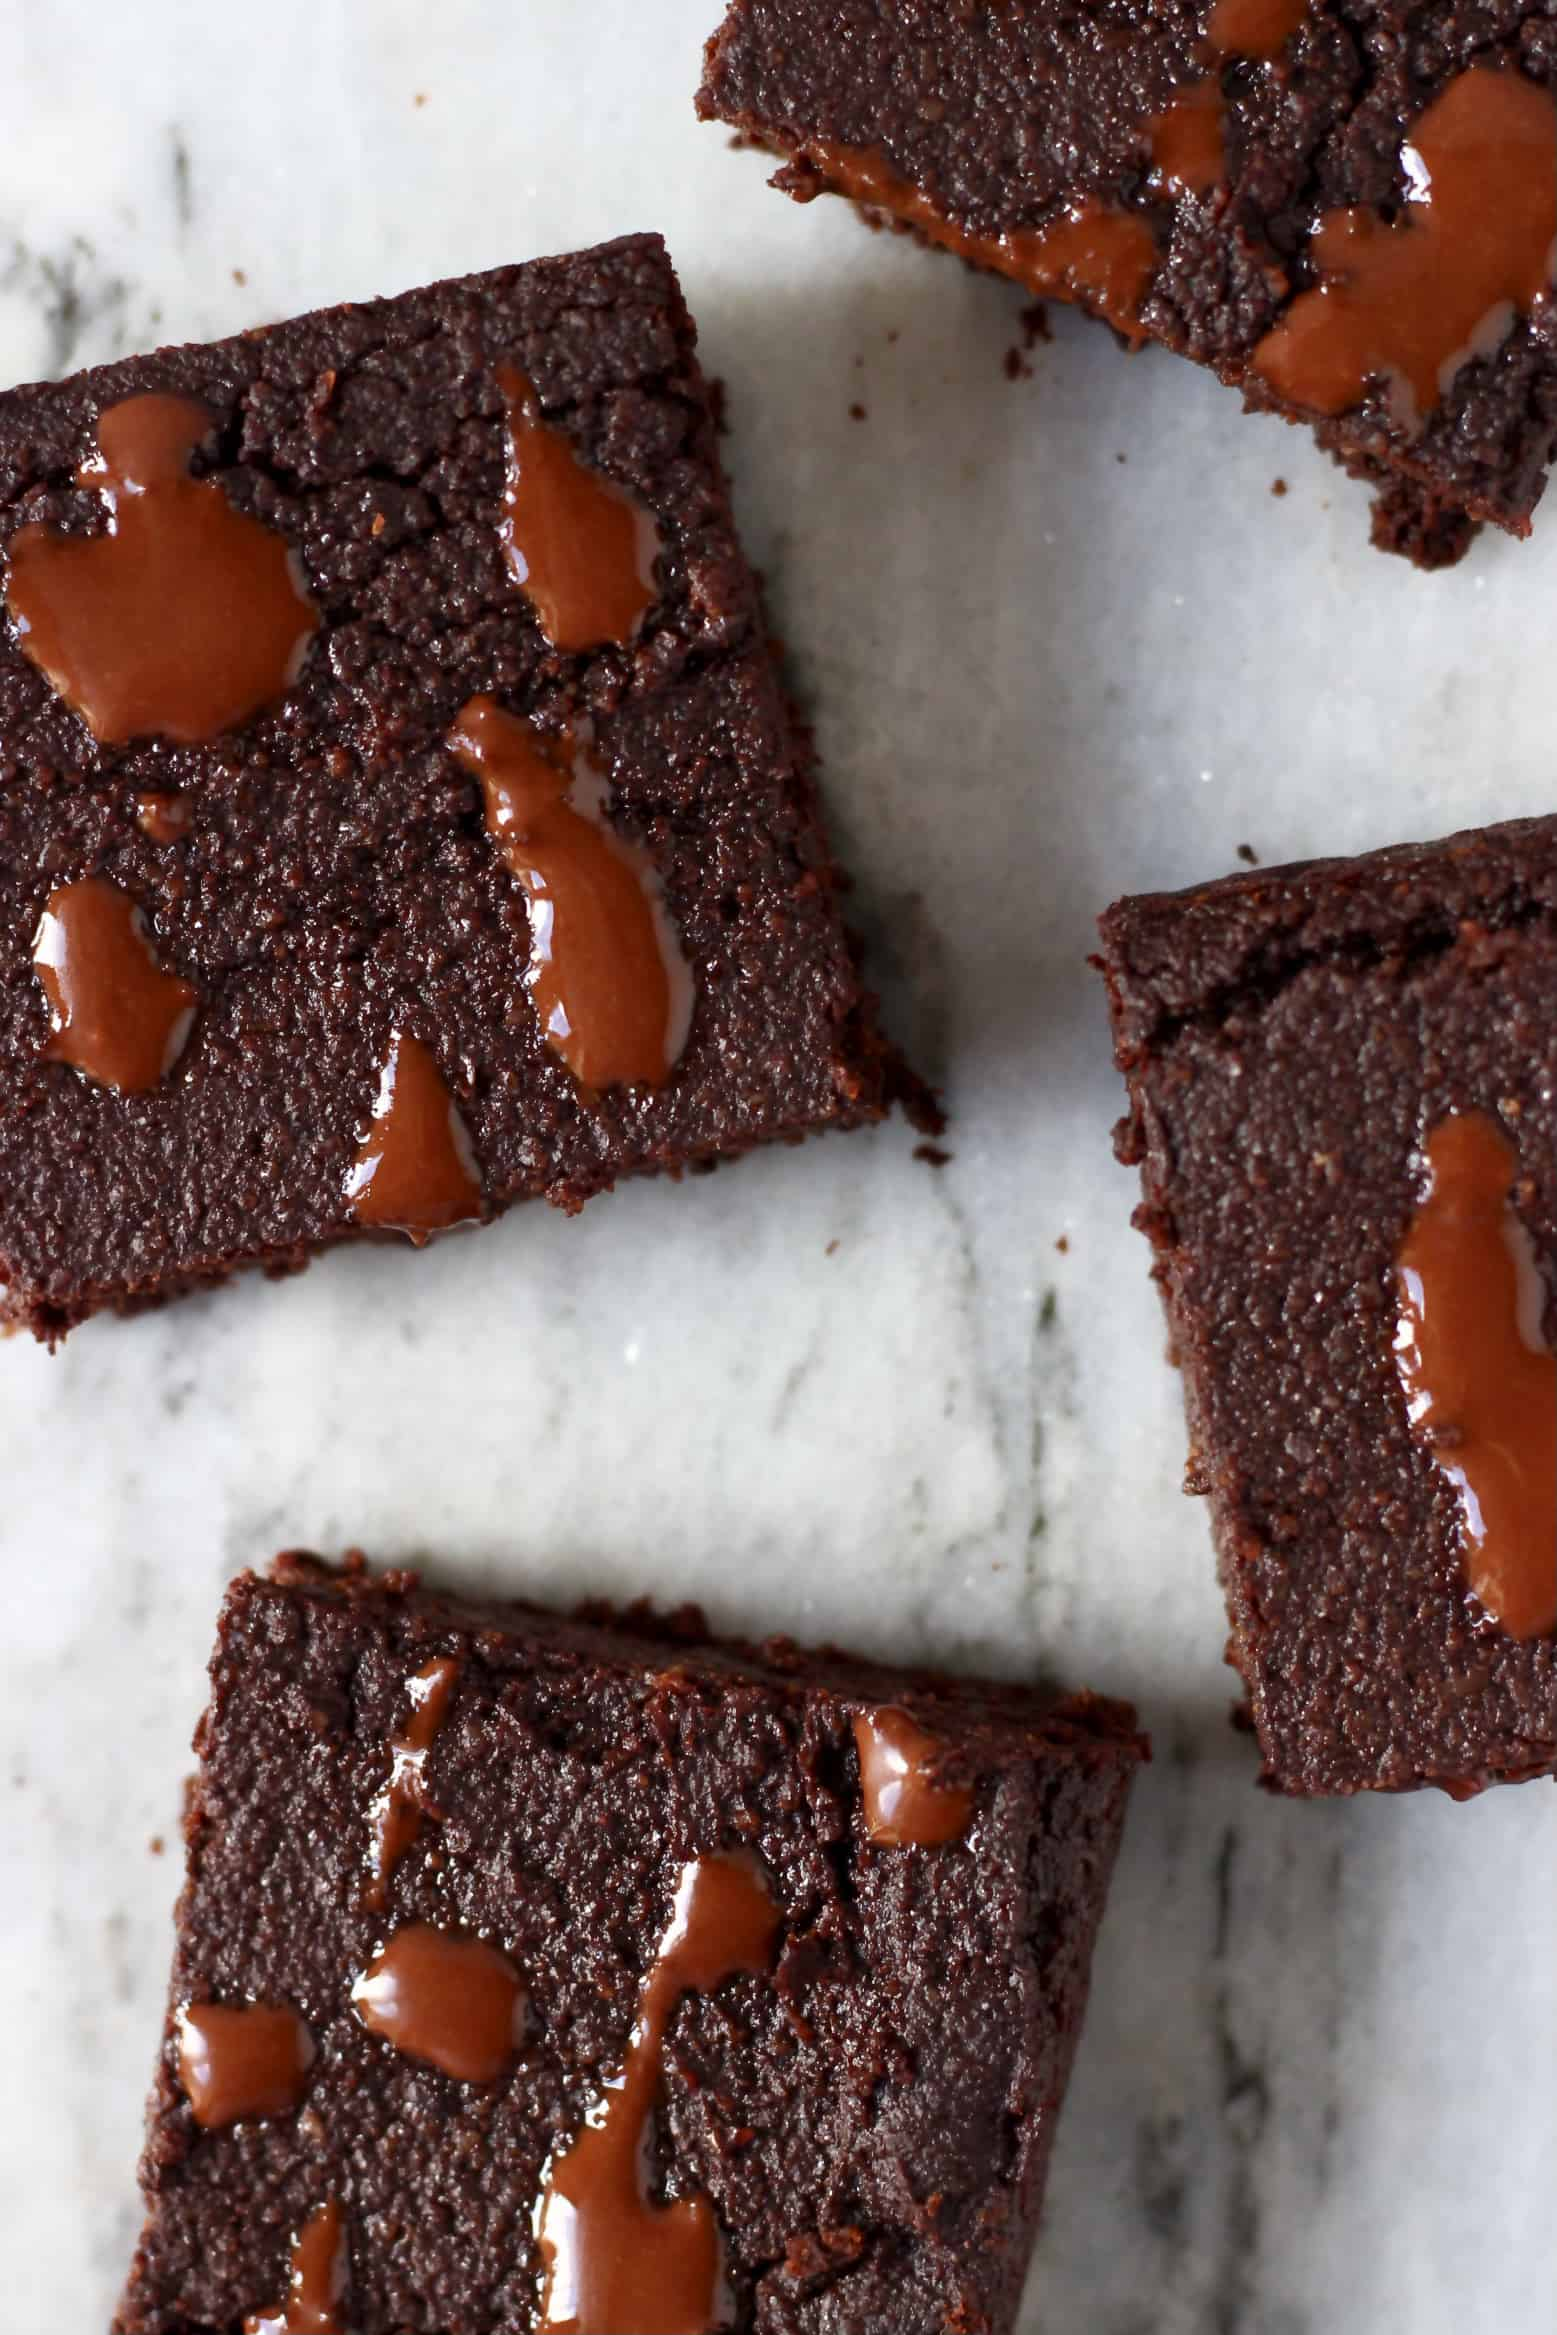 Four square vegan gluten-free chocolate brownies on a marble background